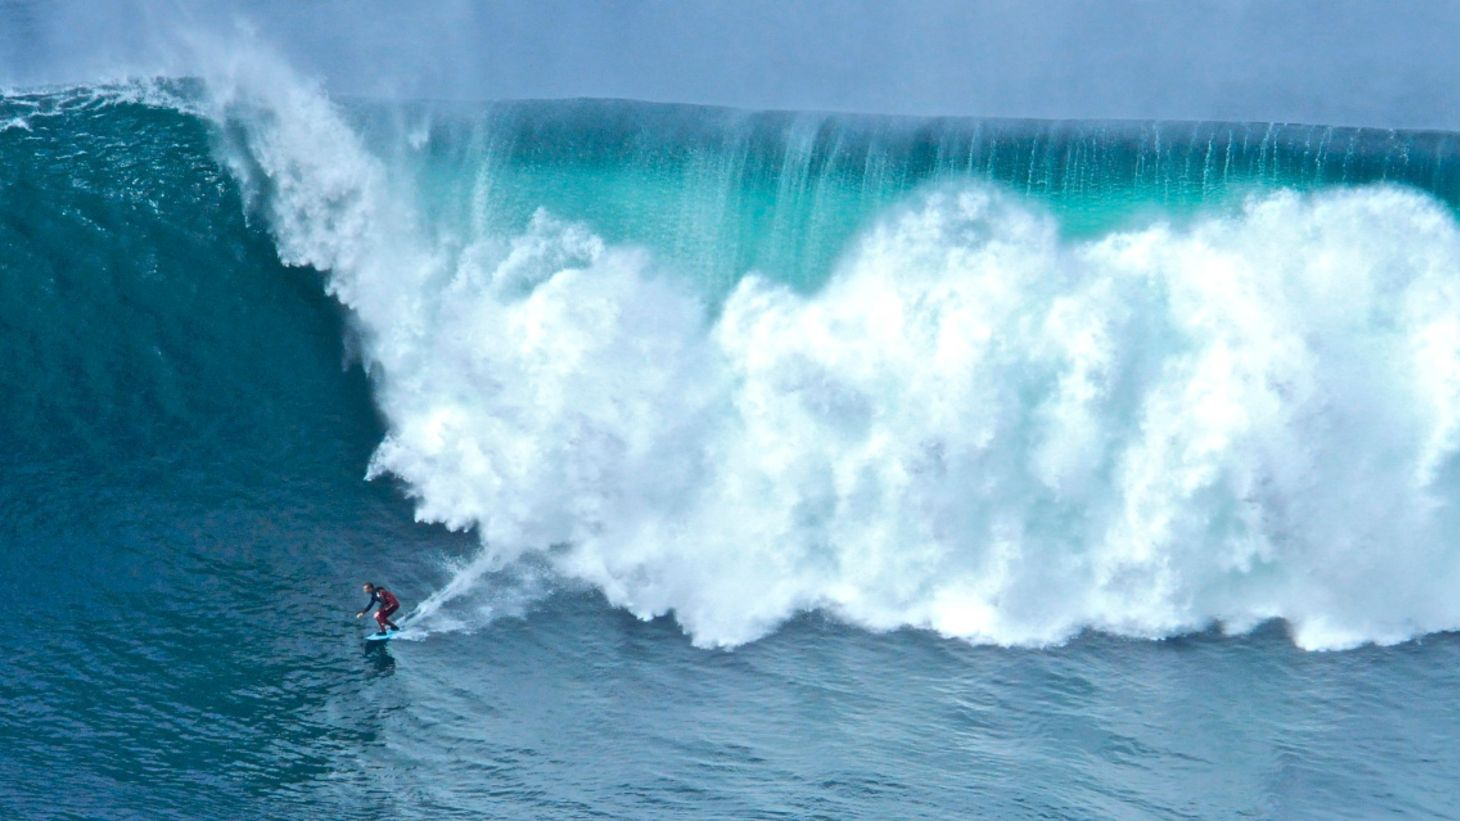 See big breaks crashing at Mullaghmore Head.